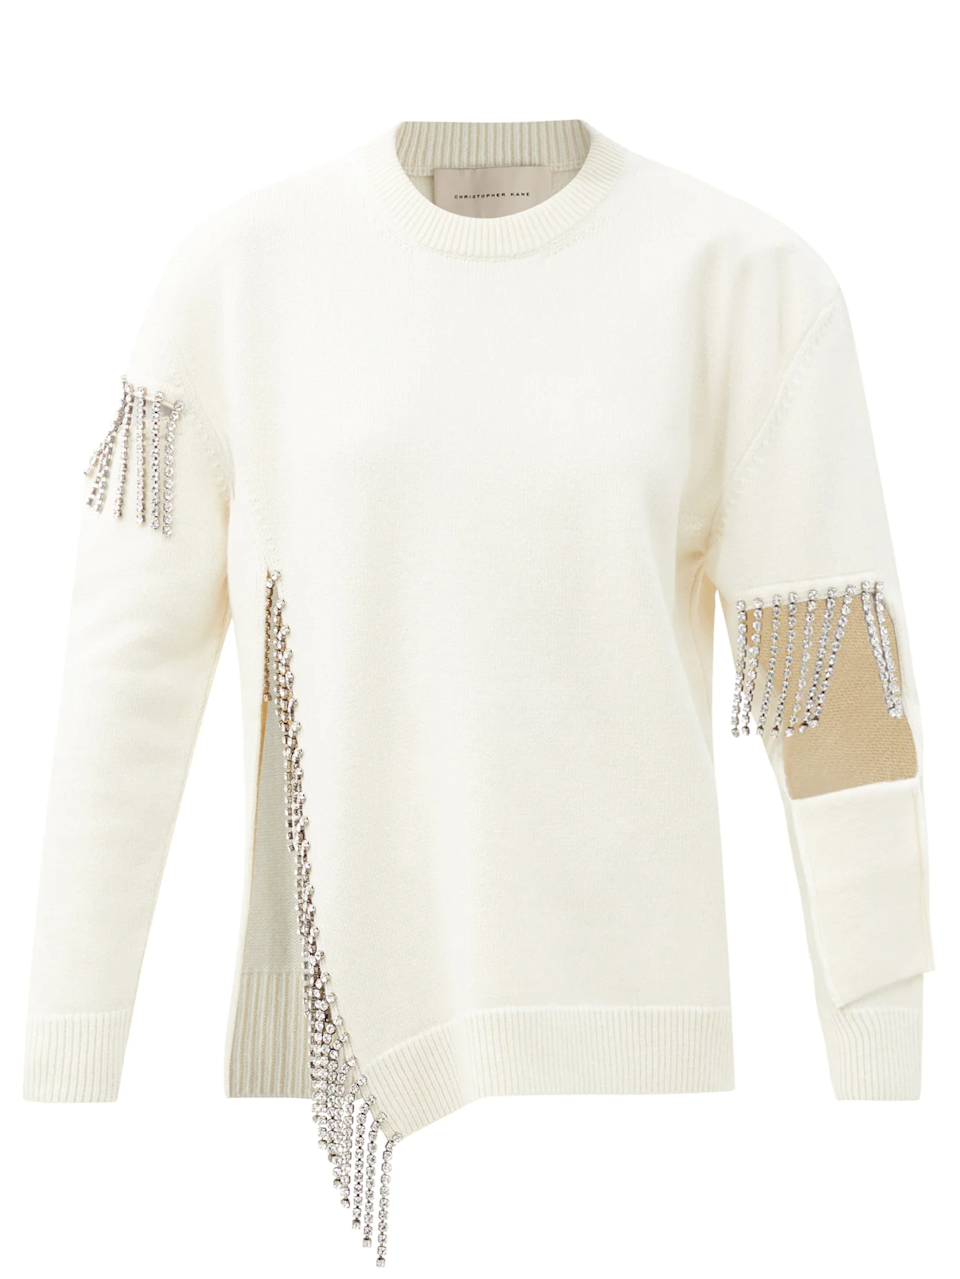 "<br><br><strong>Christopher Kane</strong> Crystal-Embellished Keyhole Wool Sweater, $, available at <a href=""https://go.skimresources.com/?id=30283X879131&url=https%3A%2F%2Fwww.matchesfashion.com%2Fproducts%2FChristopher-Kane-Crystal-embellished-keyhole-wool-sweater-1386479"" rel=""nofollow noopener"" target=""_blank"" data-ylk=""slk:MatchesFashion"" class=""link rapid-noclick-resp"">MatchesFashion</a>"